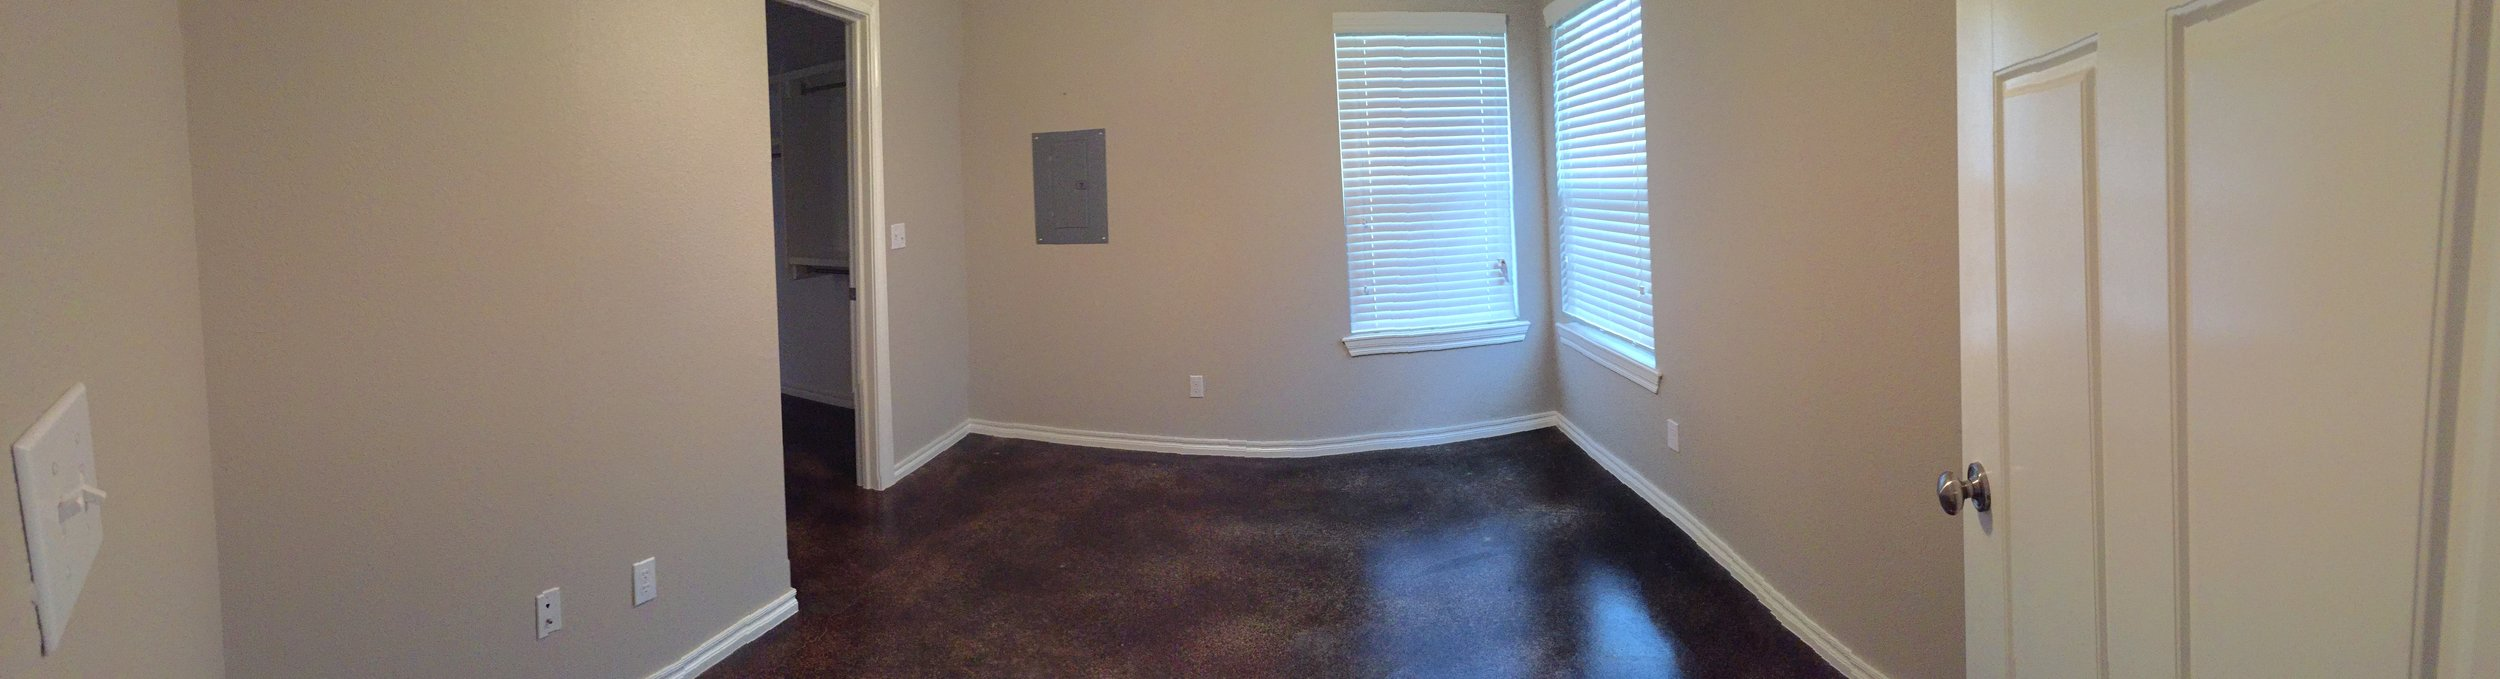 3440 Chelsea One Bed panorama